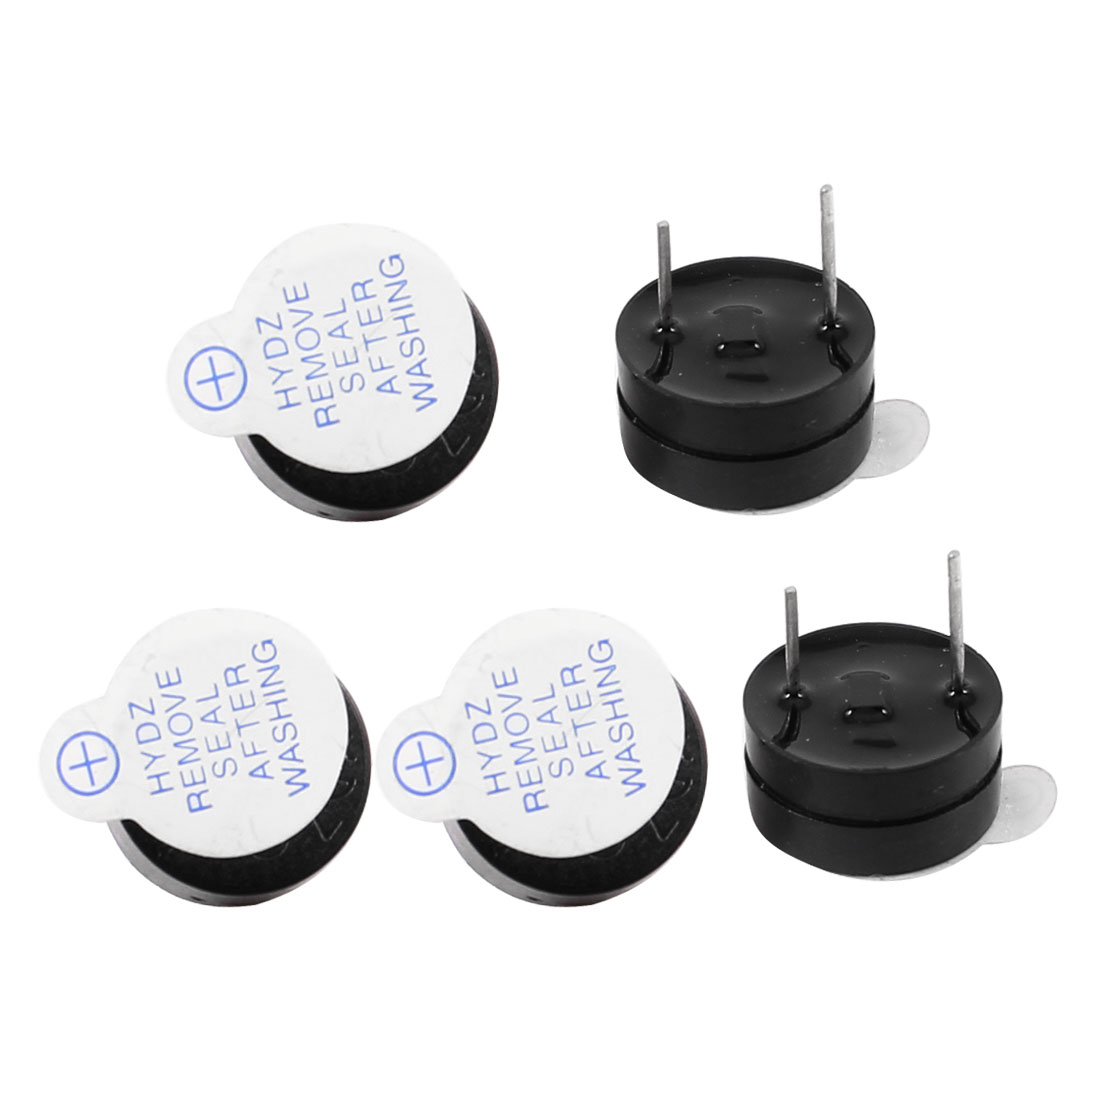 5pcs DC 5V 30mA Industrial Electronic Continuous Sound Buzzer Black 12x6.5mm